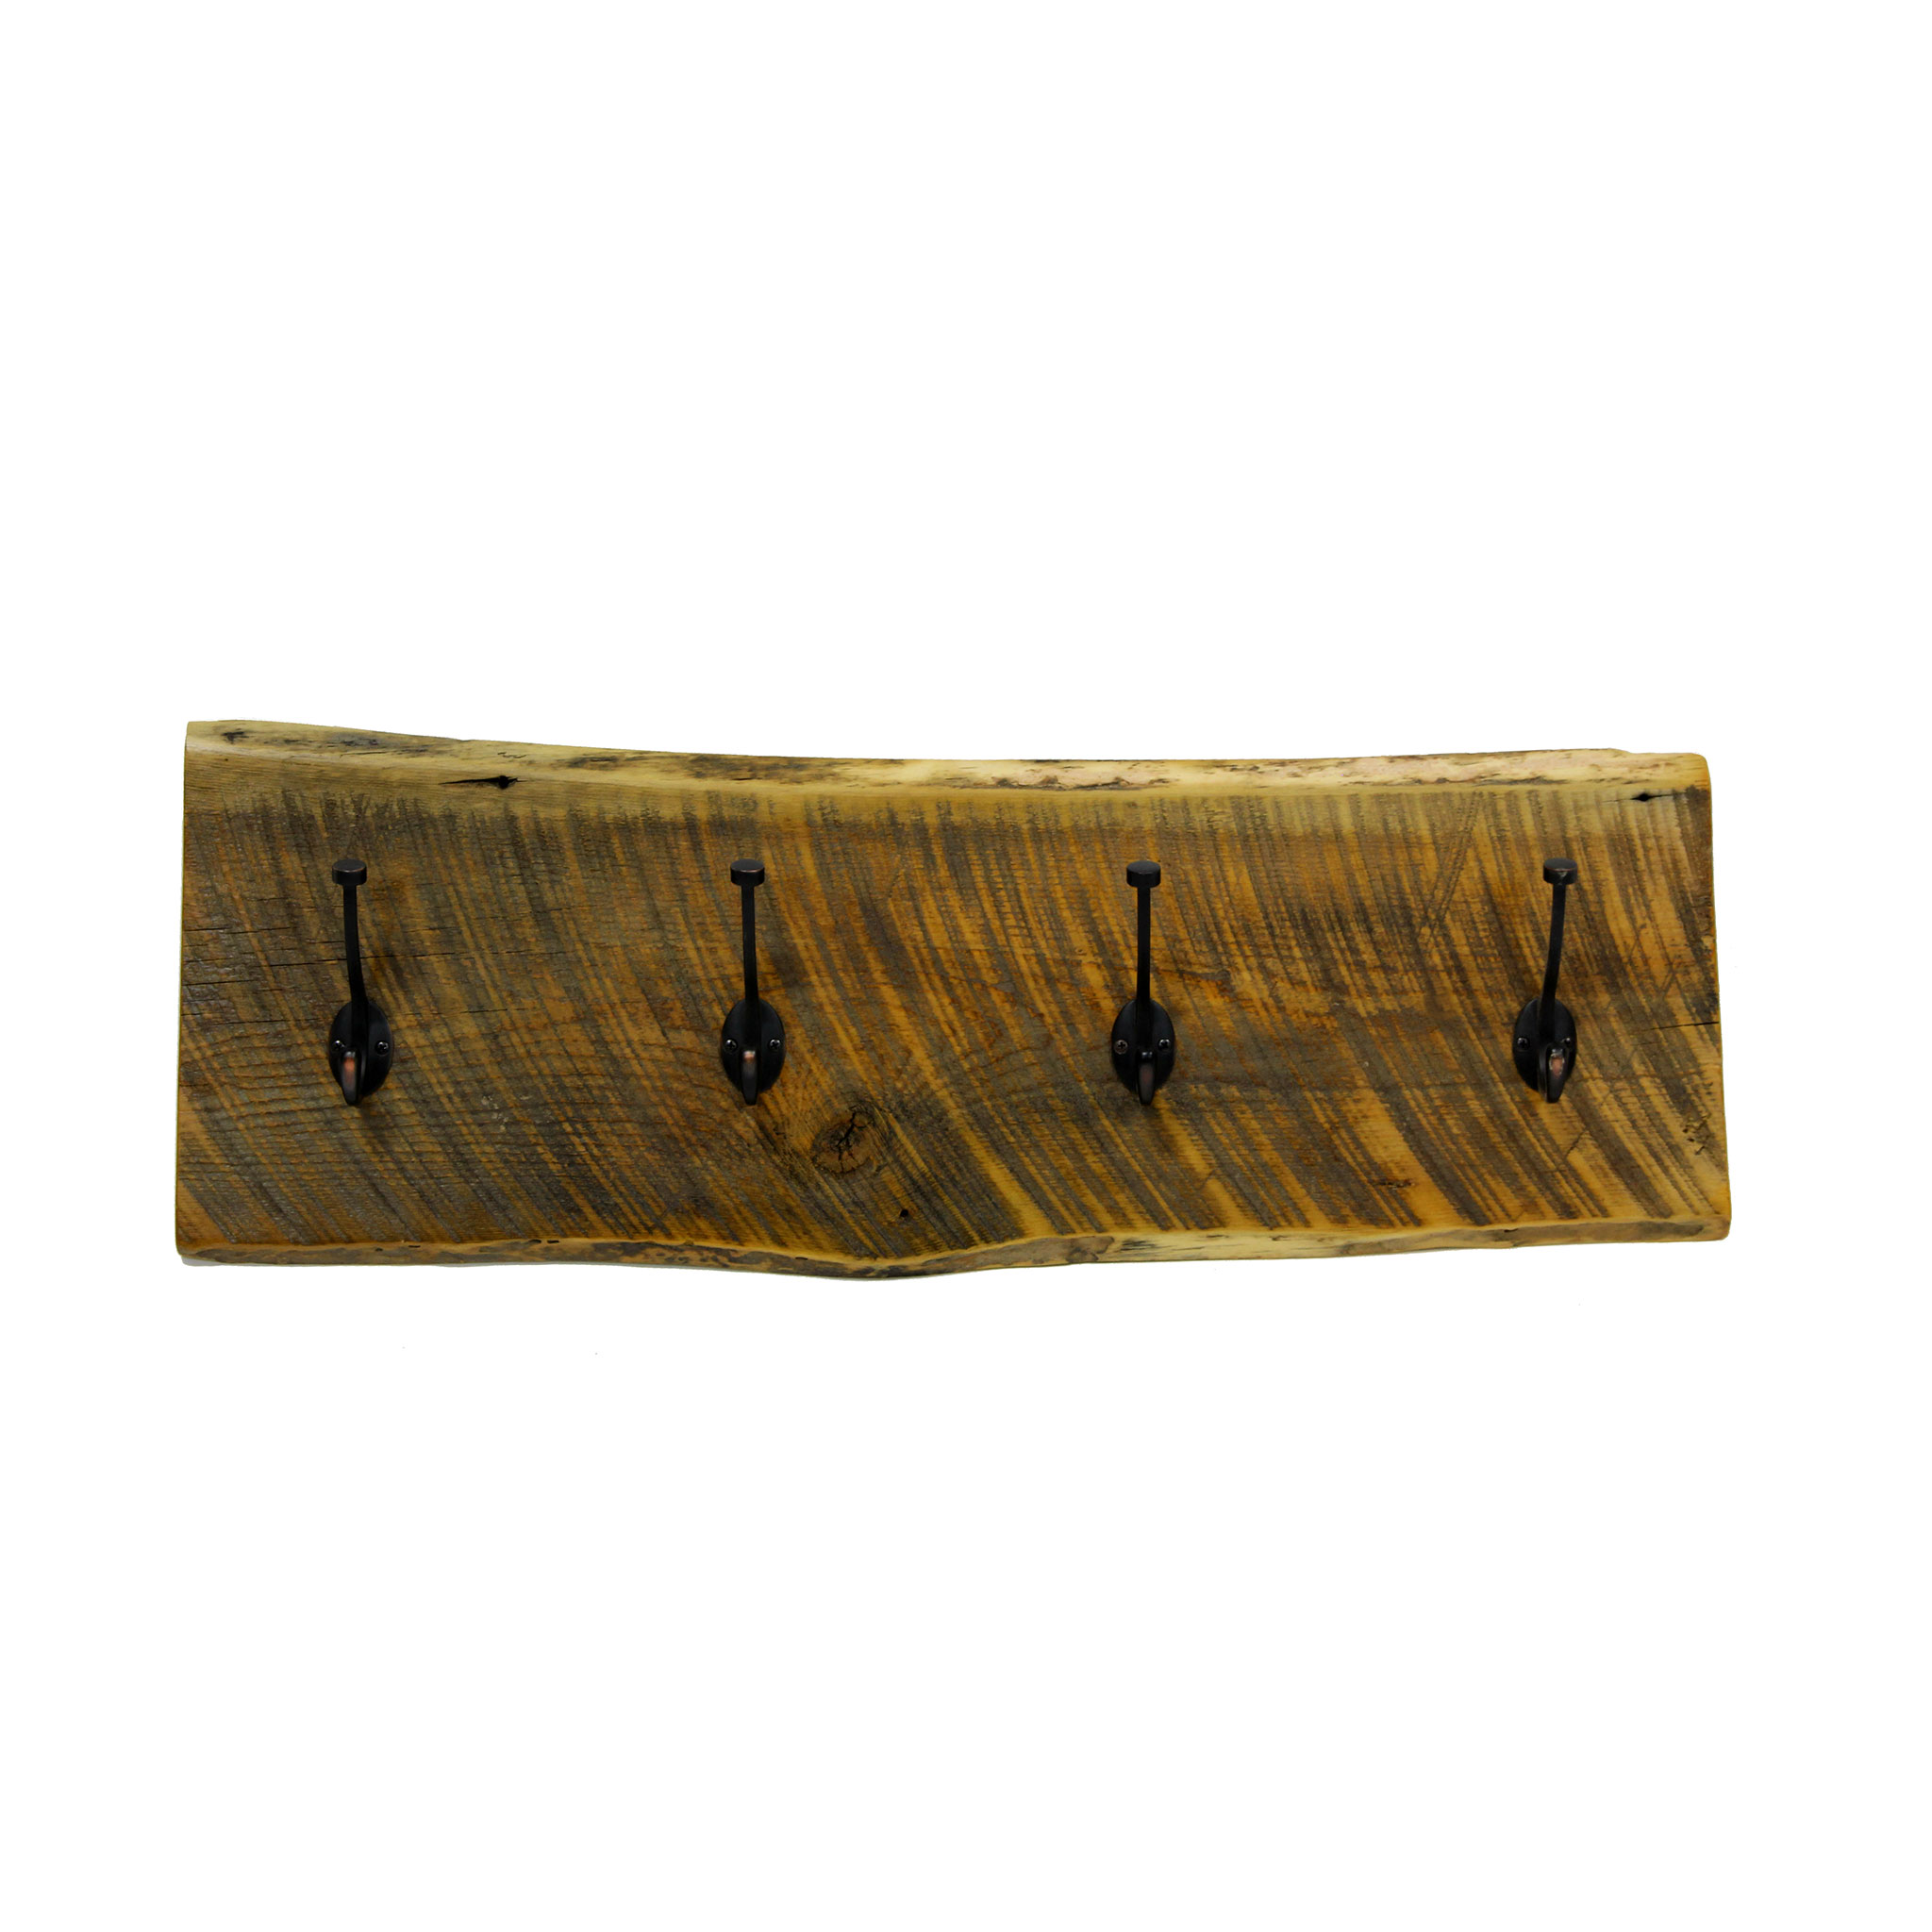 Live Edge Reclaimed Wall Mounted Coat Rack Four Corner